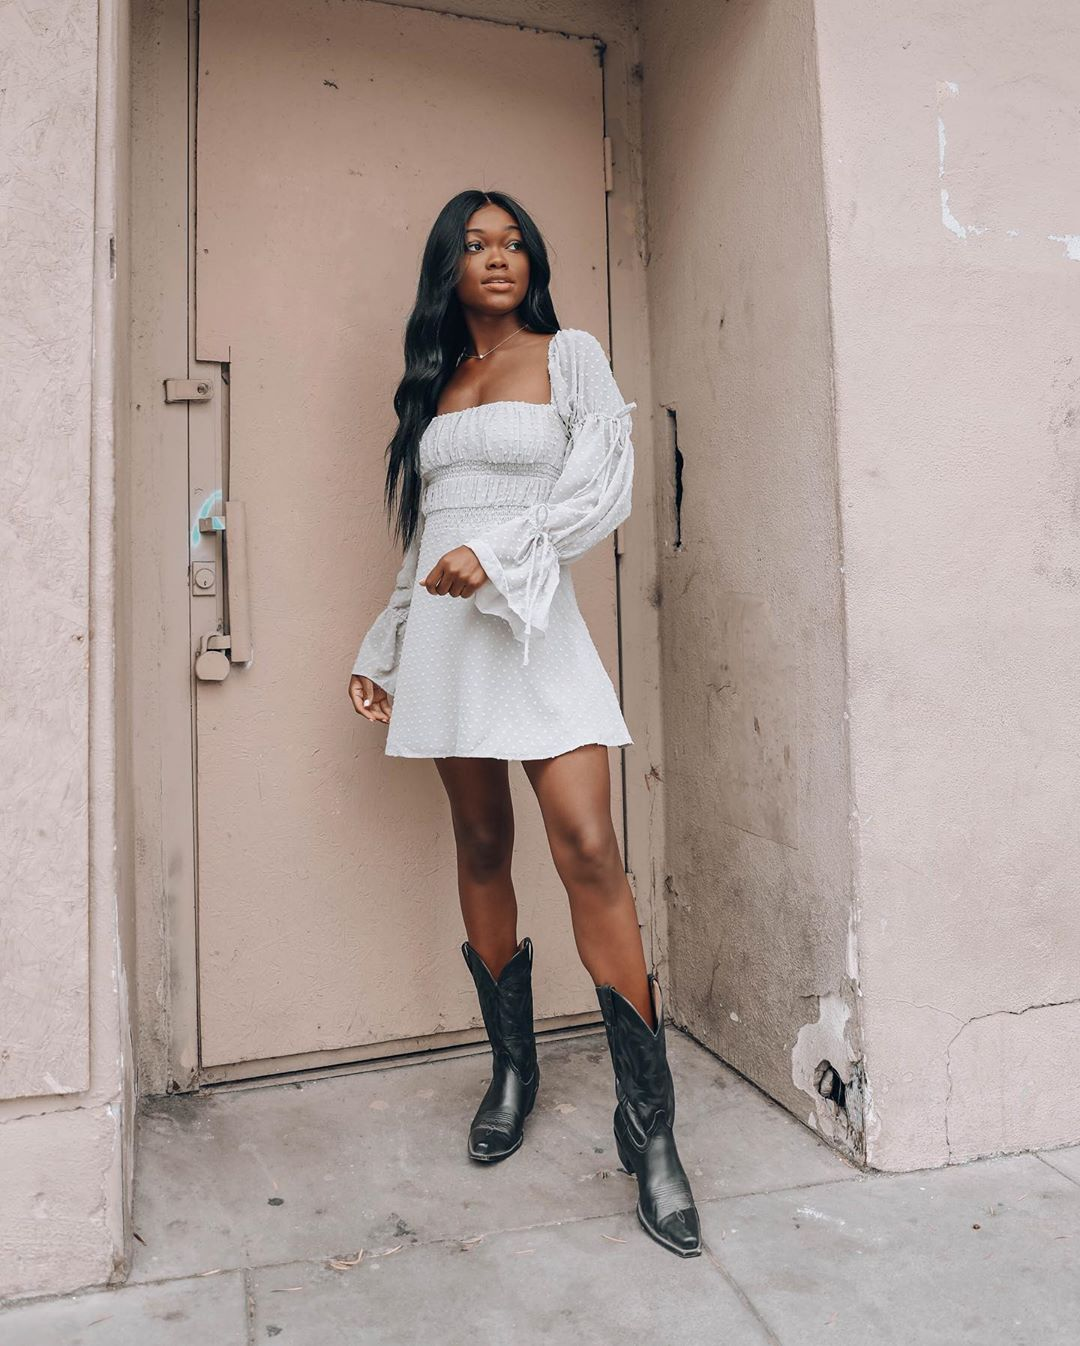 Pinterest Brennastasia Ig Brenna Anastasia Long Sleeve Dress Puff Sleeves Cowboy Boots Summer Outfit Longsleevedress Fashion Outfits Style Outfits [ 1346 x 1080 Pixel ]